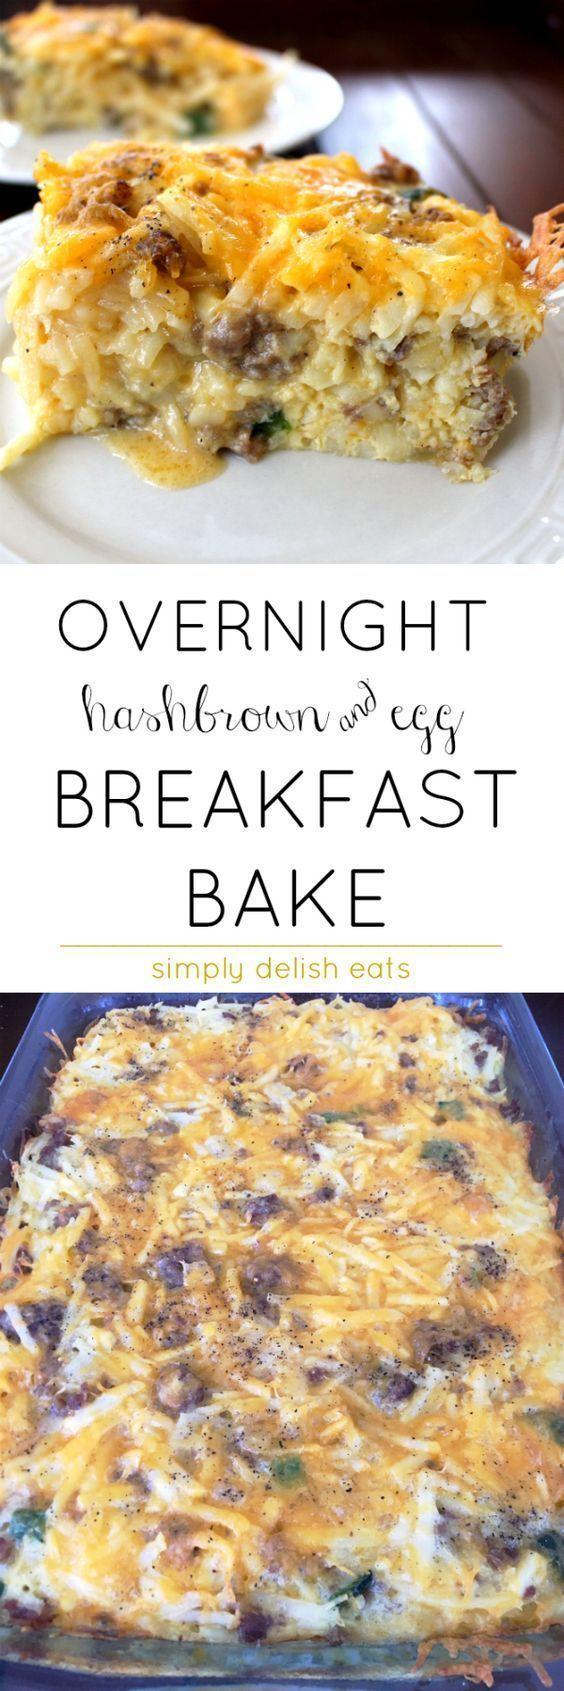 overnight cheesy hashbrown & egg baked breakfast casserole.